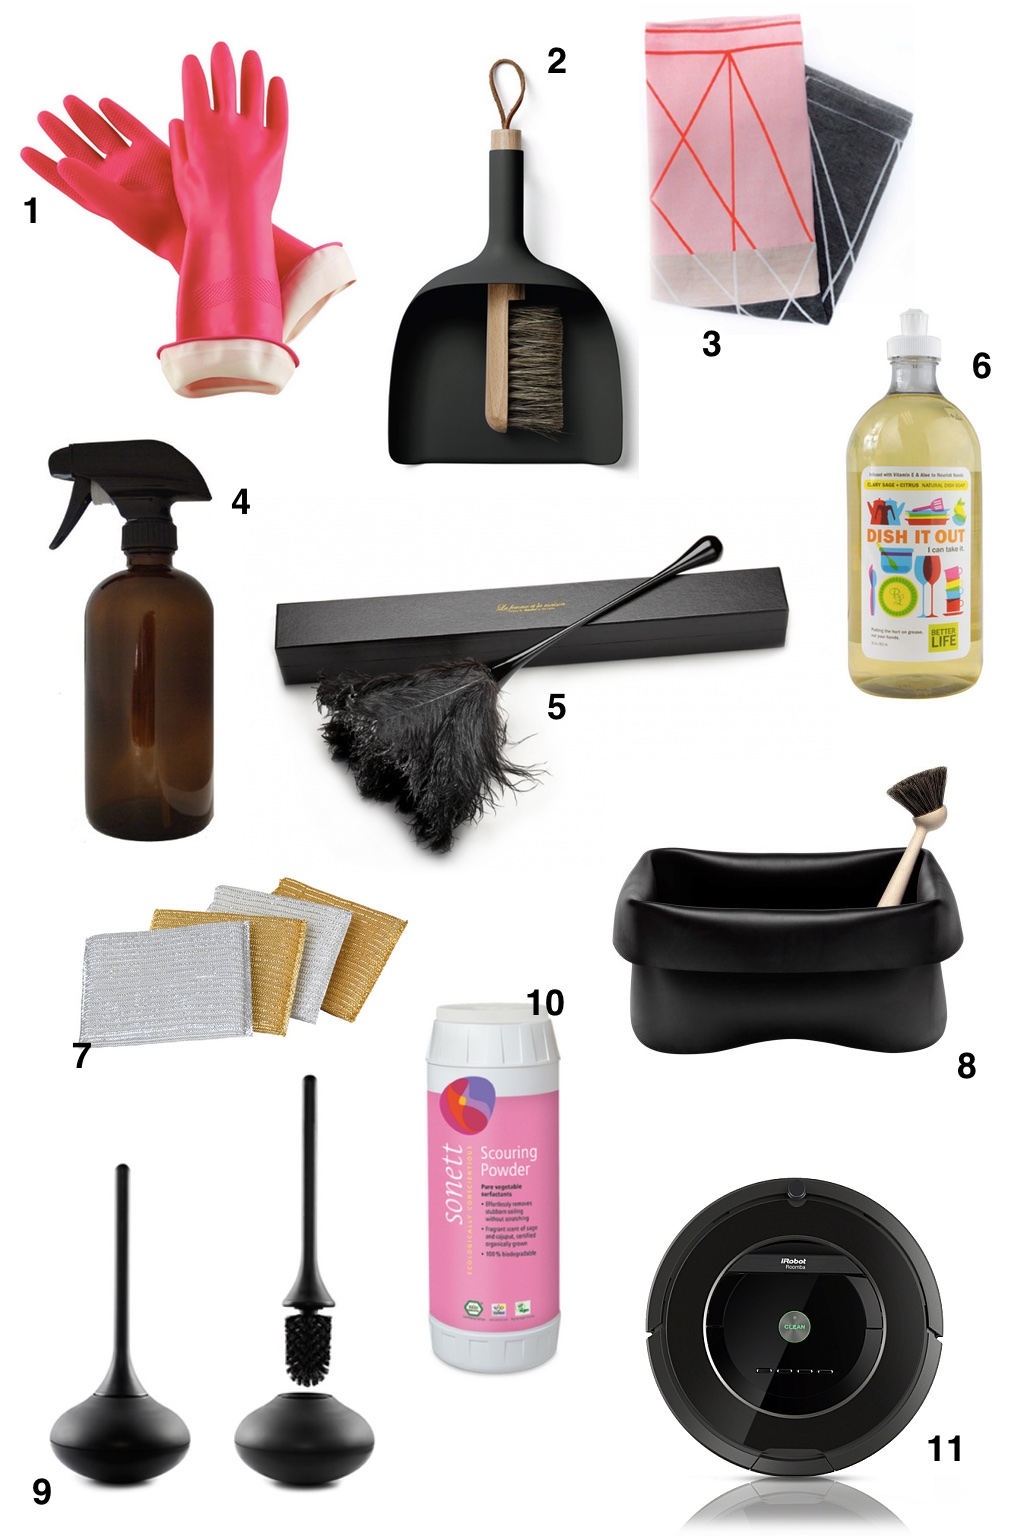 1.   C  LEANING GLOVES  // 2.   DUST PAN & BRUSH  // 3.   DISH TOWEL   // 4.   SPRAY BOTTLE   // 5.   FEATHER DUSTER  // 6.   DISH SOAP  // 7.   SPONGES   // 8.   K    ITCHEN SINK CADDY  // 9.   TOILET BRUSH   // 10.   SCOURING POWDER  // 11.   ROOMBA VACUUM